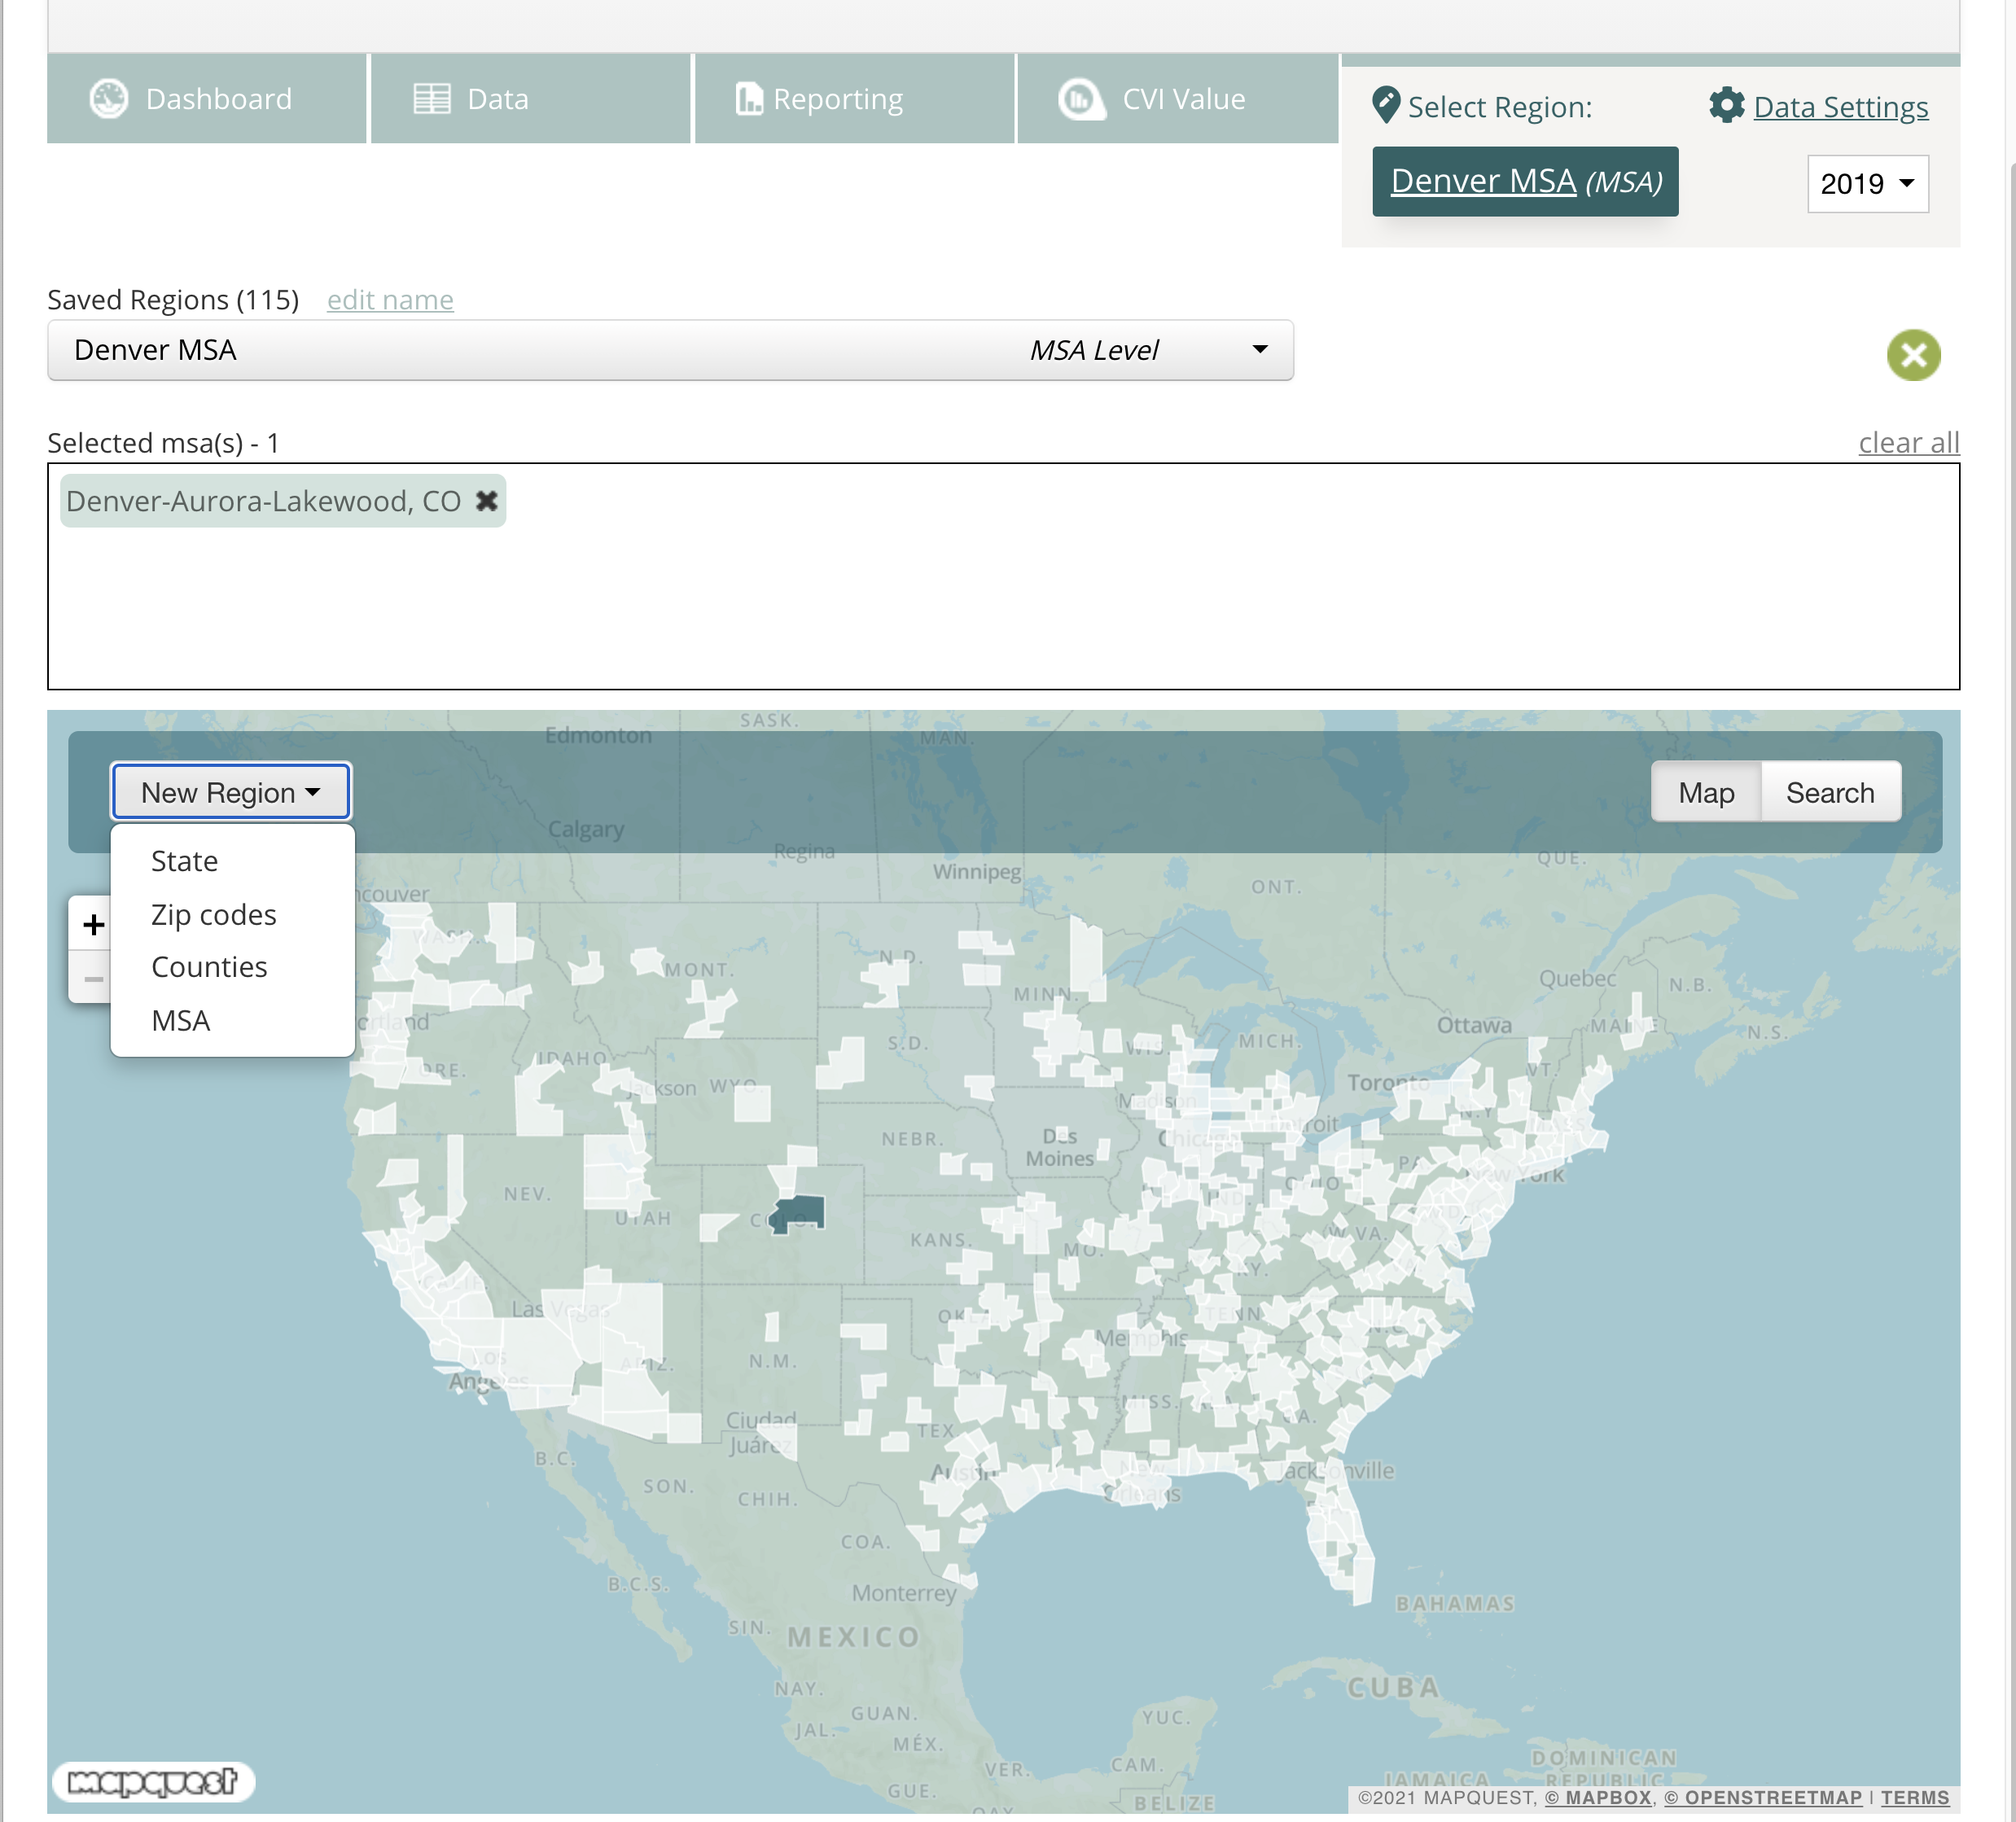 Screenshot of the region selector that includes a map of the US, drop-down to choose region, data year, name of region.